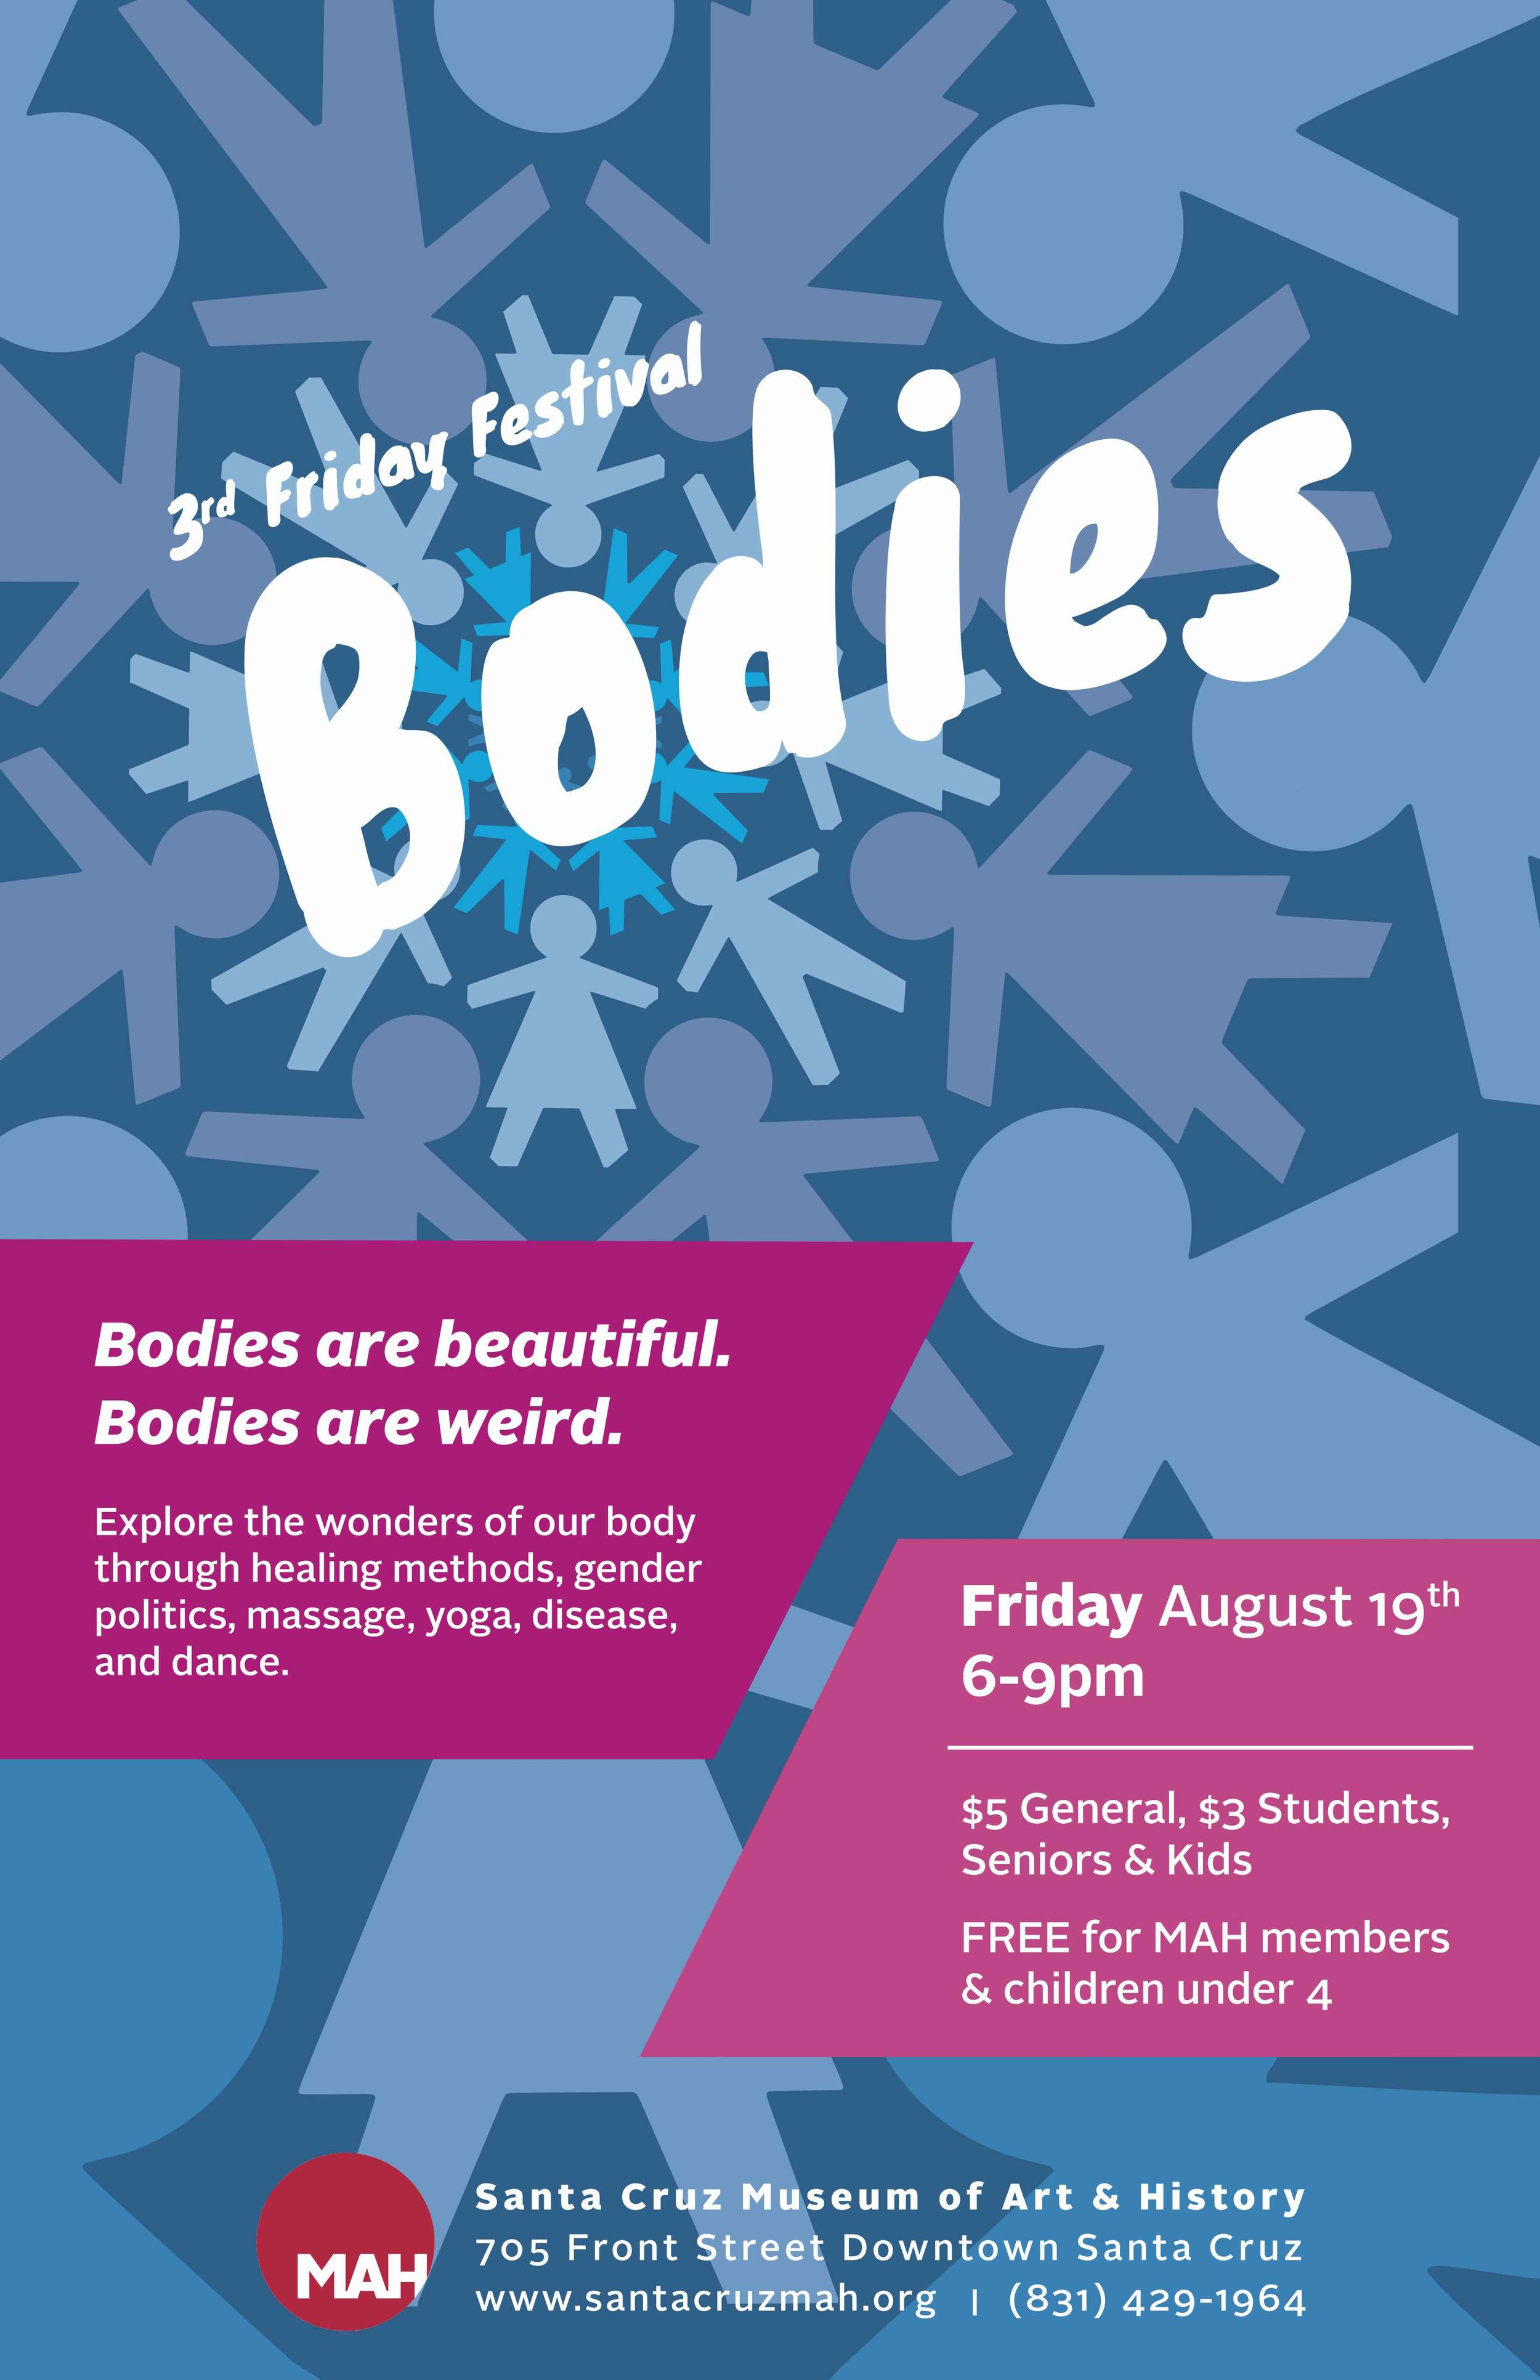 Poster made for the Bodies 3rd Friday Event at the Santa Cruz Museum of Art & History.  Design of figures by Eric Zwierzynski.